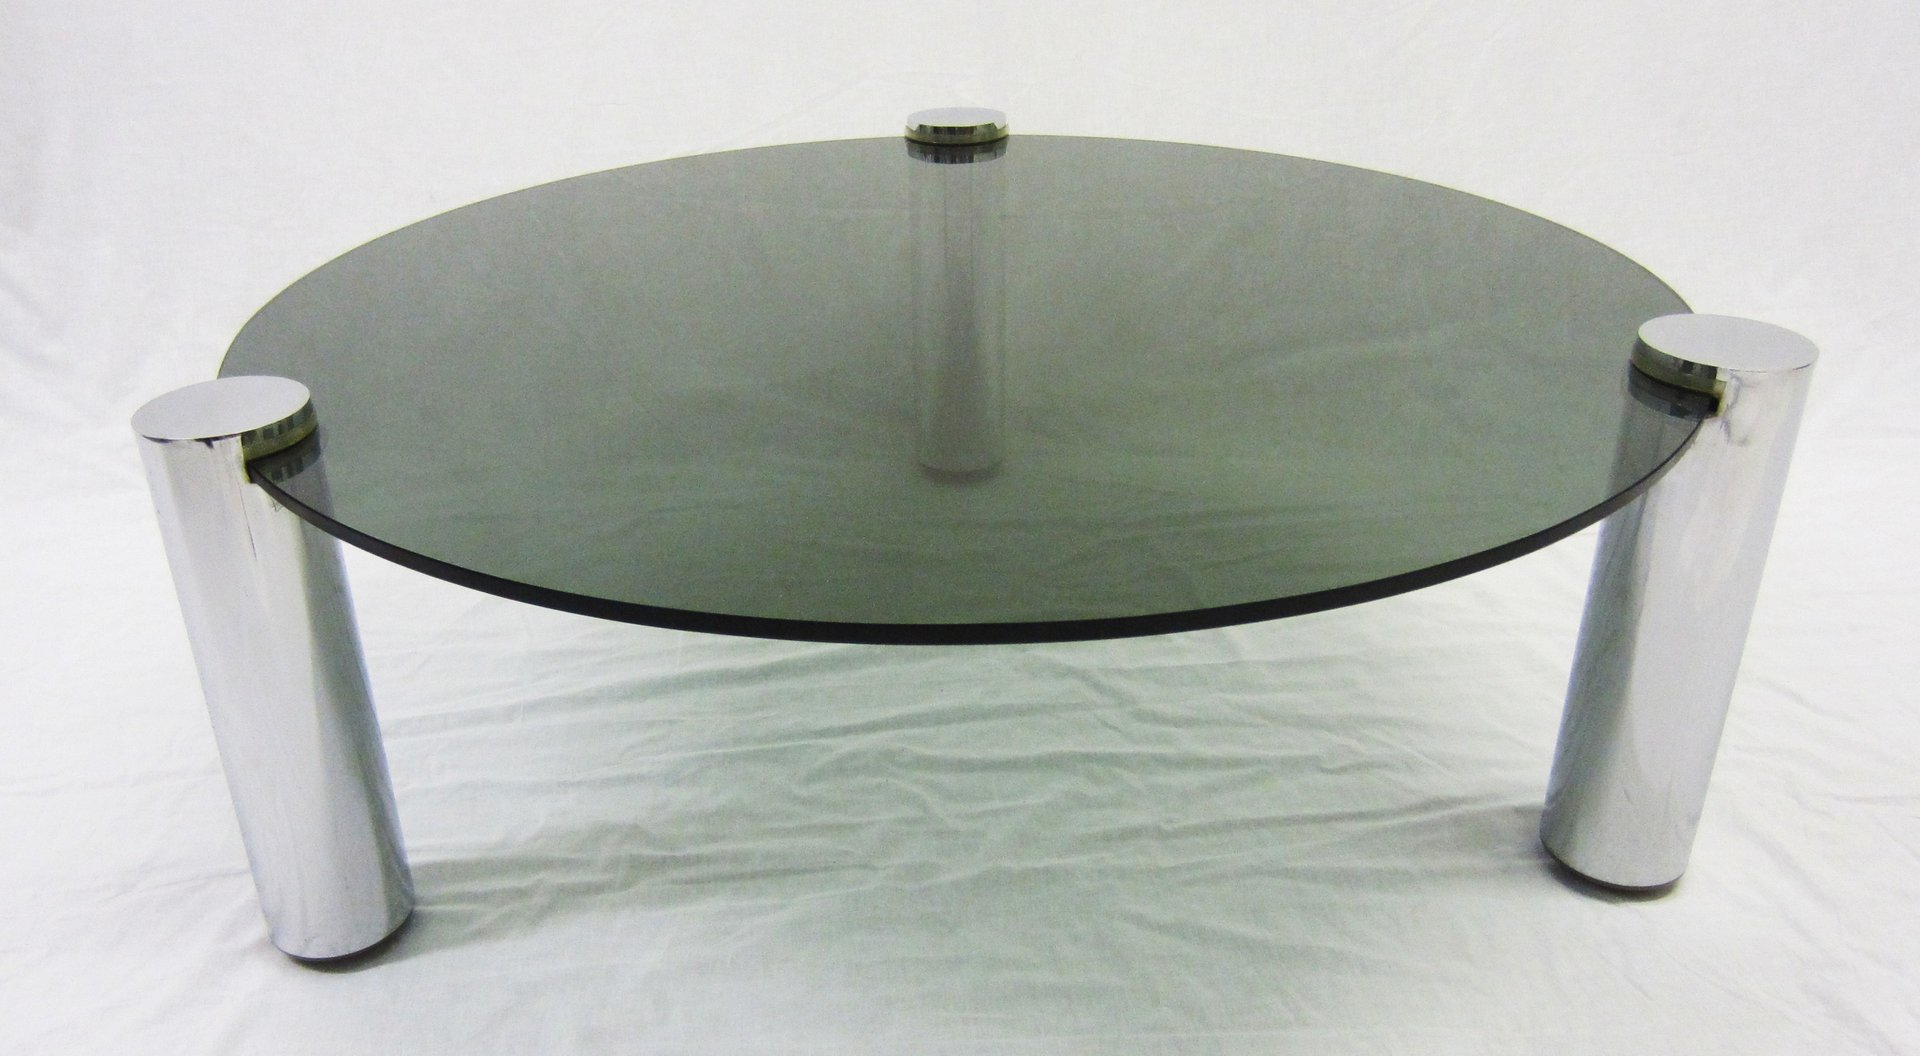 Round glass and chrome coffee table from pieff 1960s for for Round glass coffee tables for sale